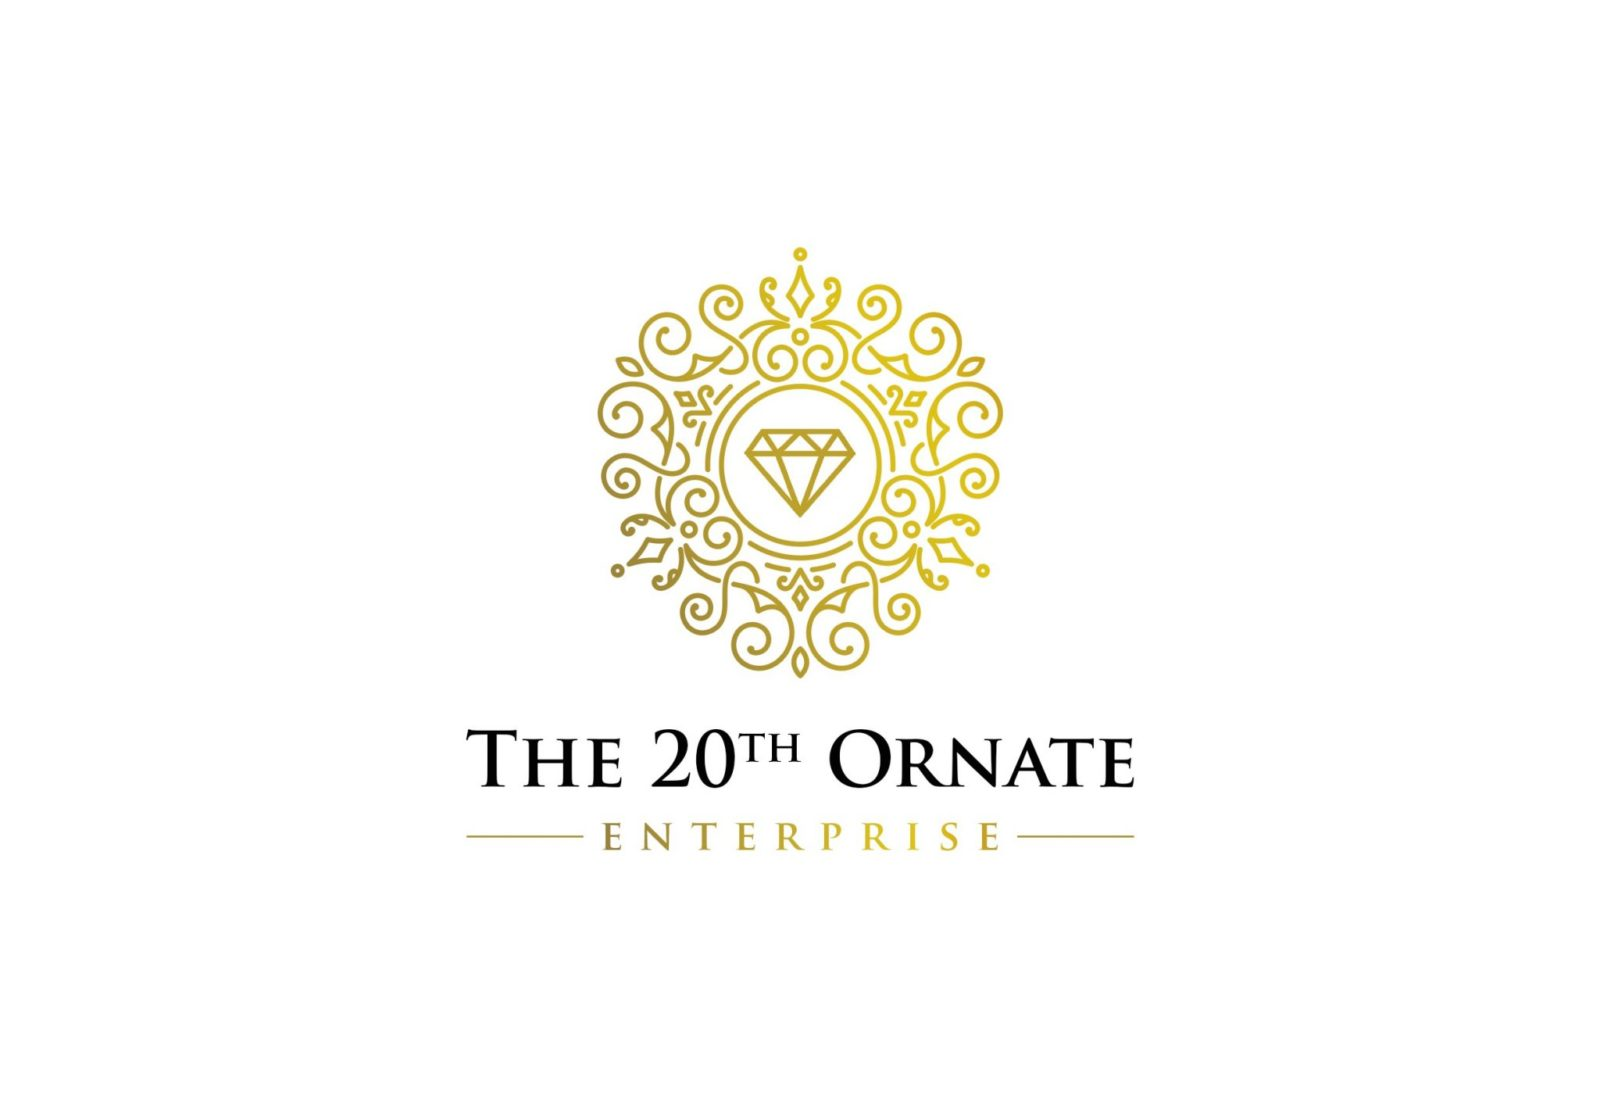 The 20th Ornate Enterprise